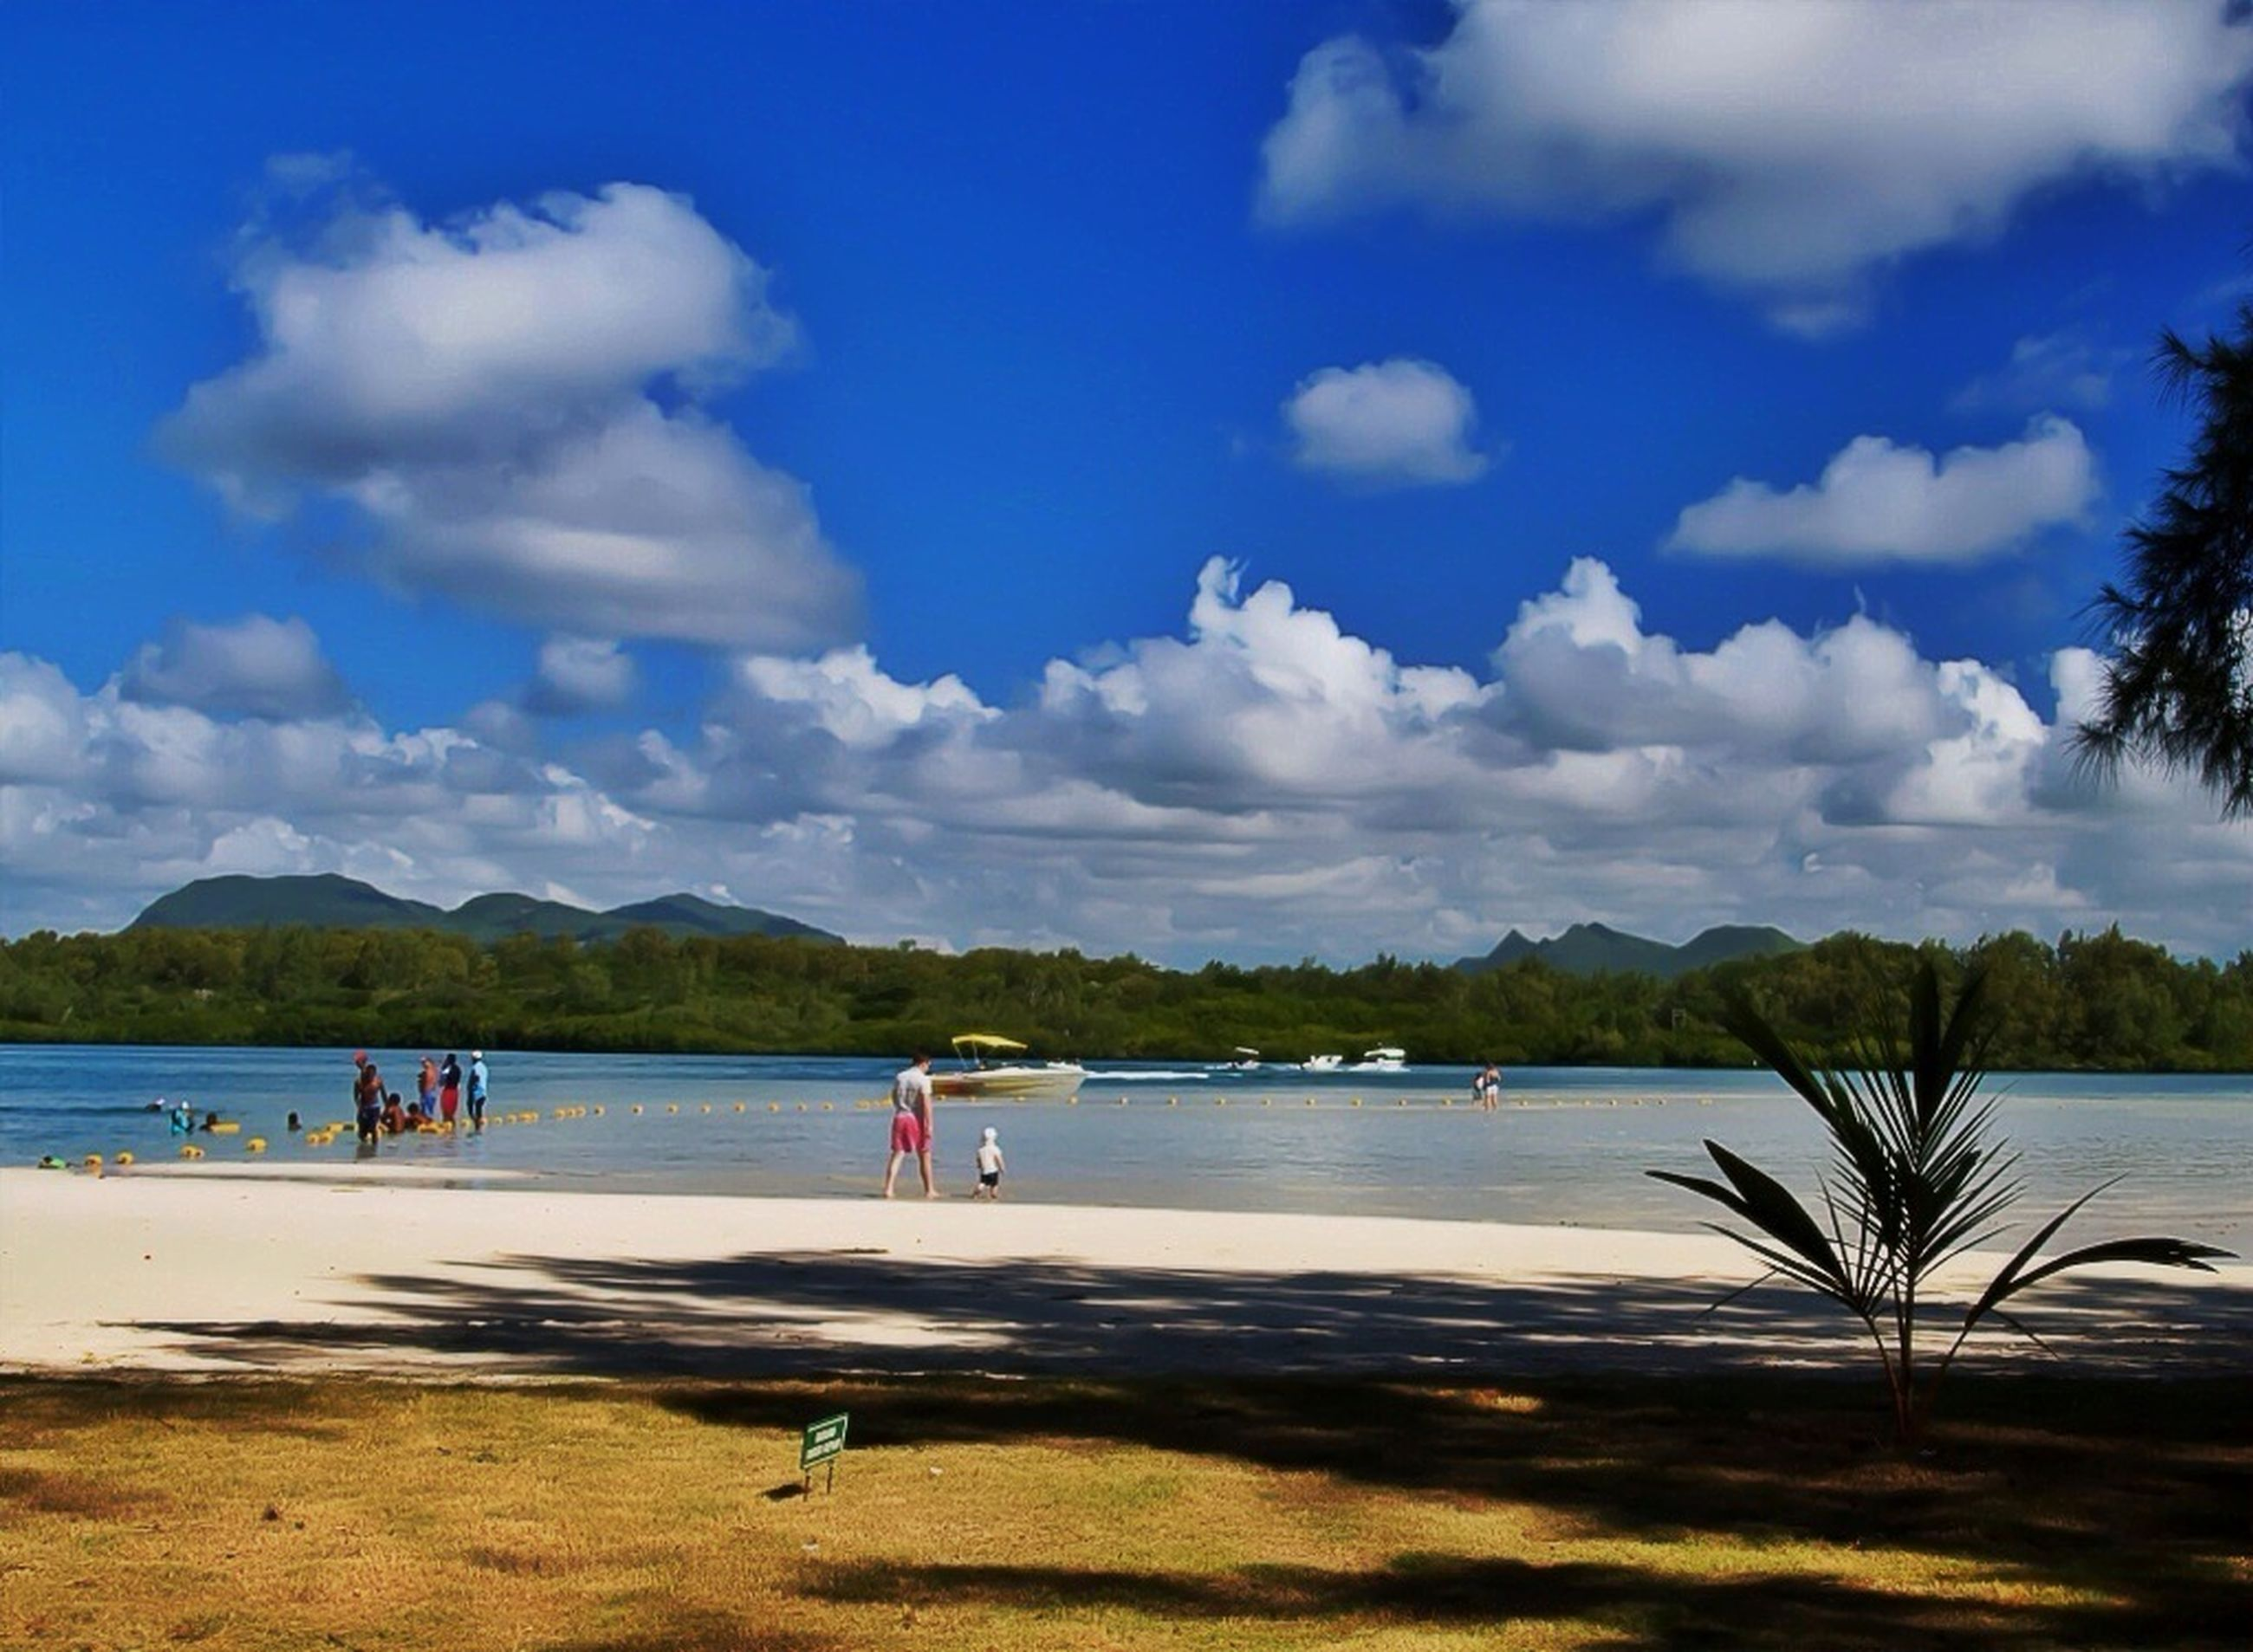 water, sky, beach, tranquil scene, tranquility, scenics, sea, shore, sand, cloud - sky, beauty in nature, cloud, nature, mountain, blue, leisure activity, tree, vacations, lifestyles